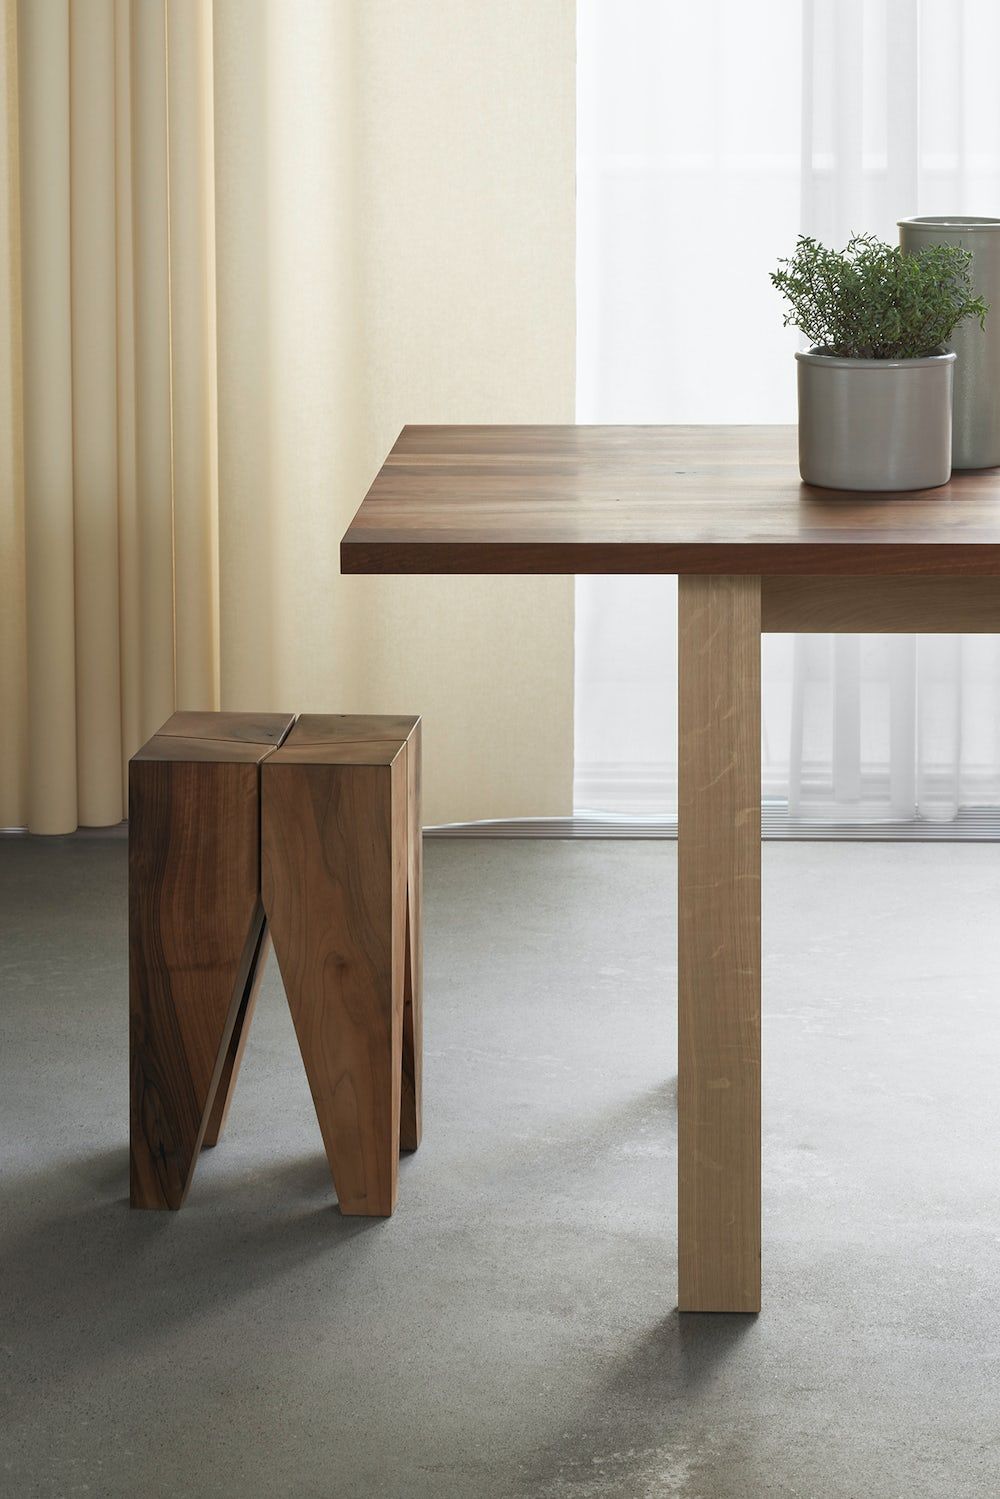 e15 backenzahn stool with fayland table